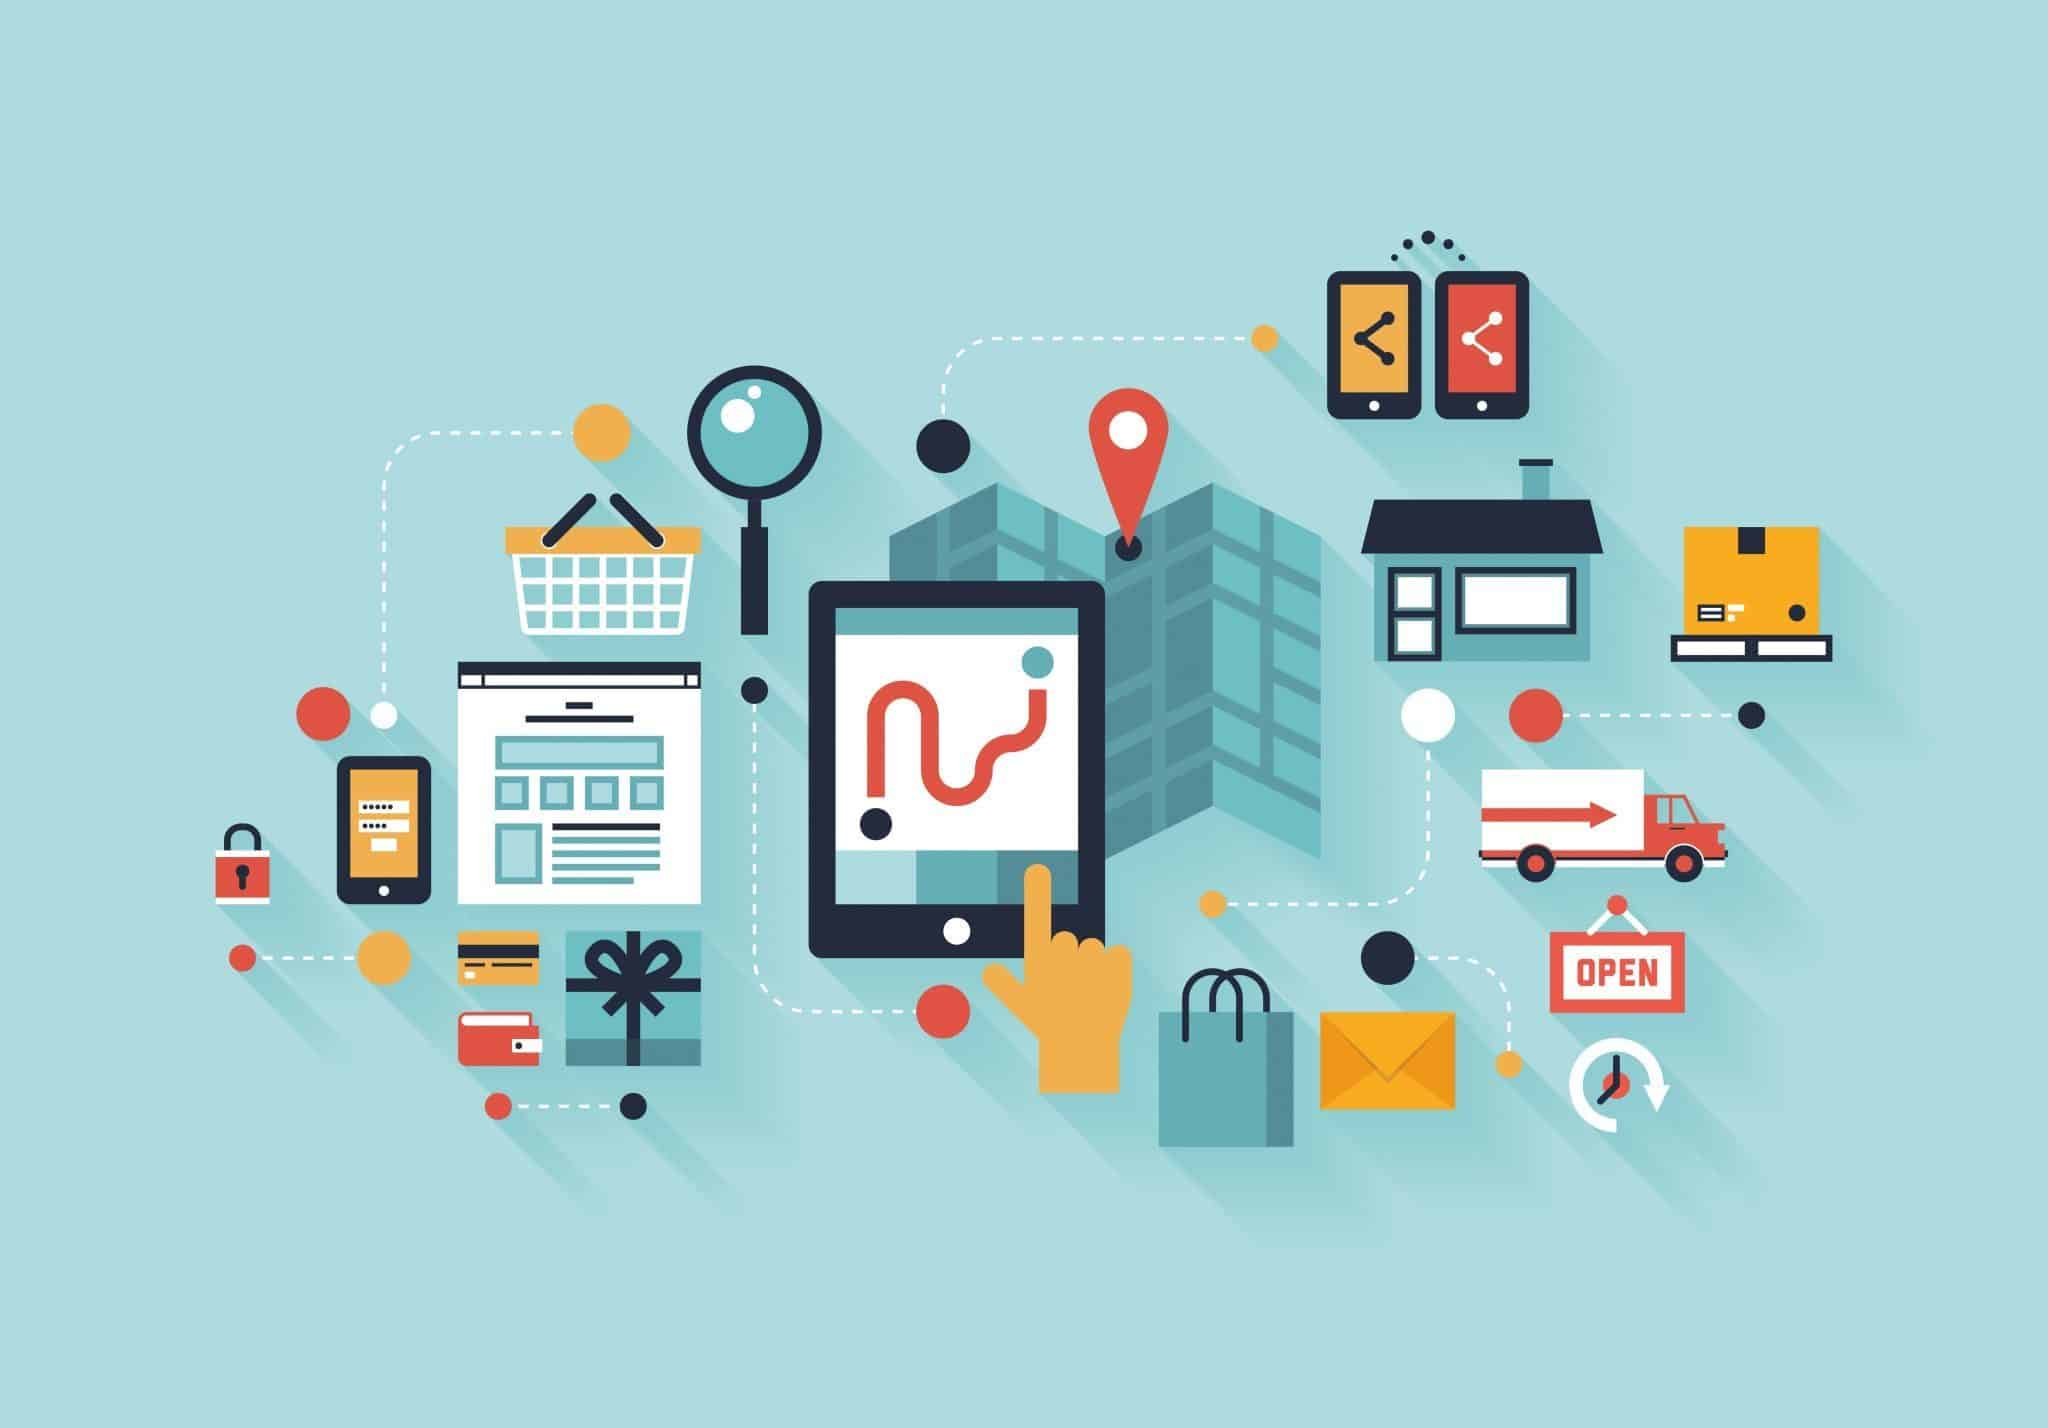 How to grow your web business with digital marketing